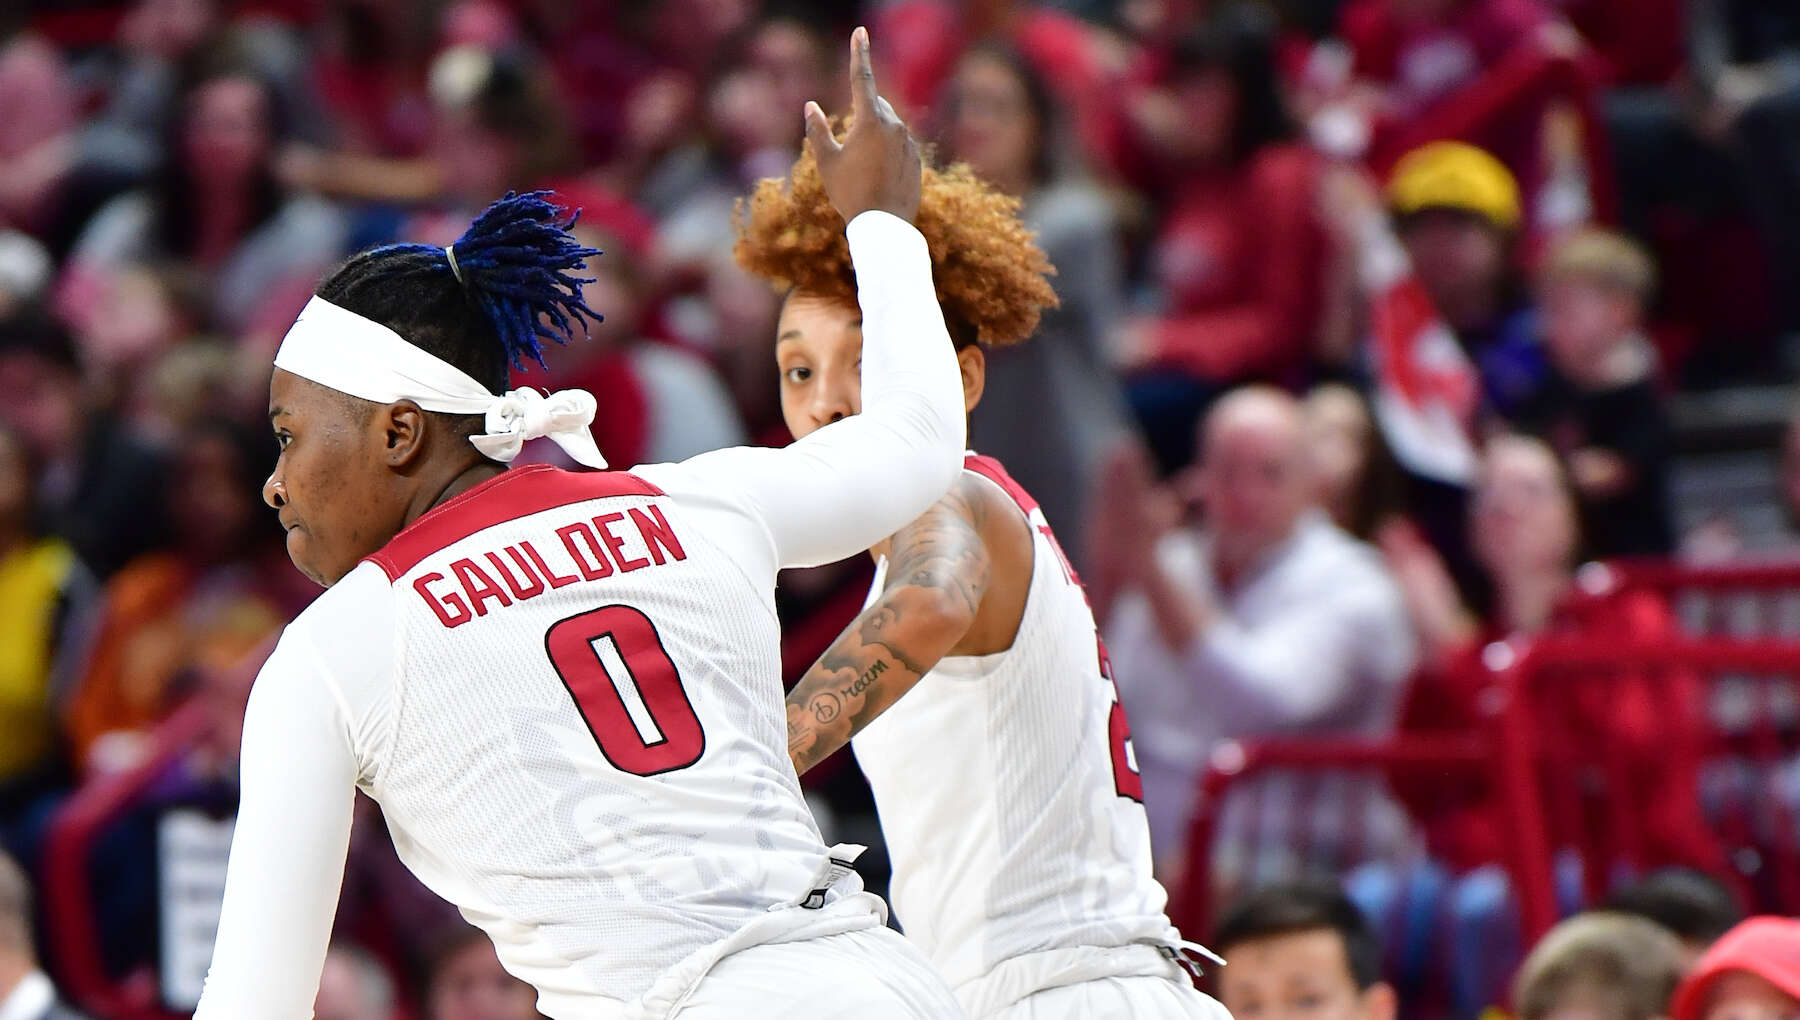 Hogs Bounce Back, Beat Florida, 79-57